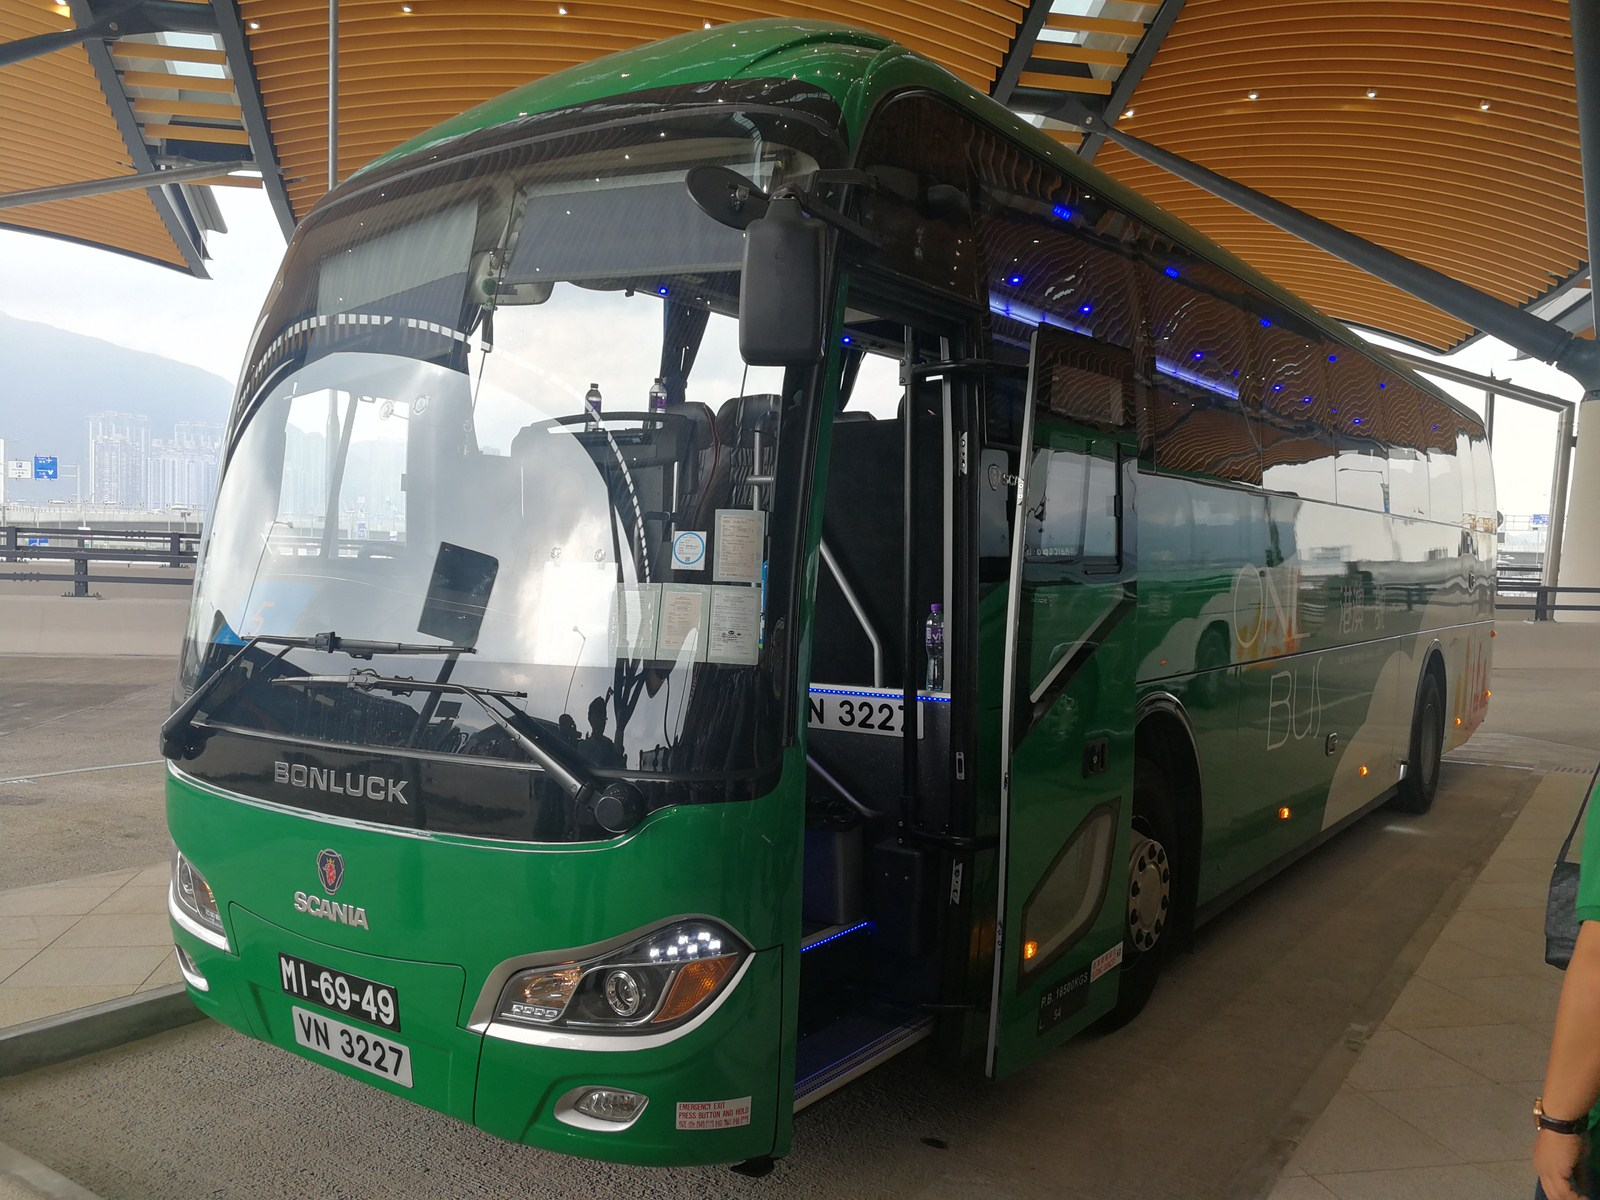 BONLUCKBUS accredited shuttles Hong Kong-Zhuhai-Macao Bridge